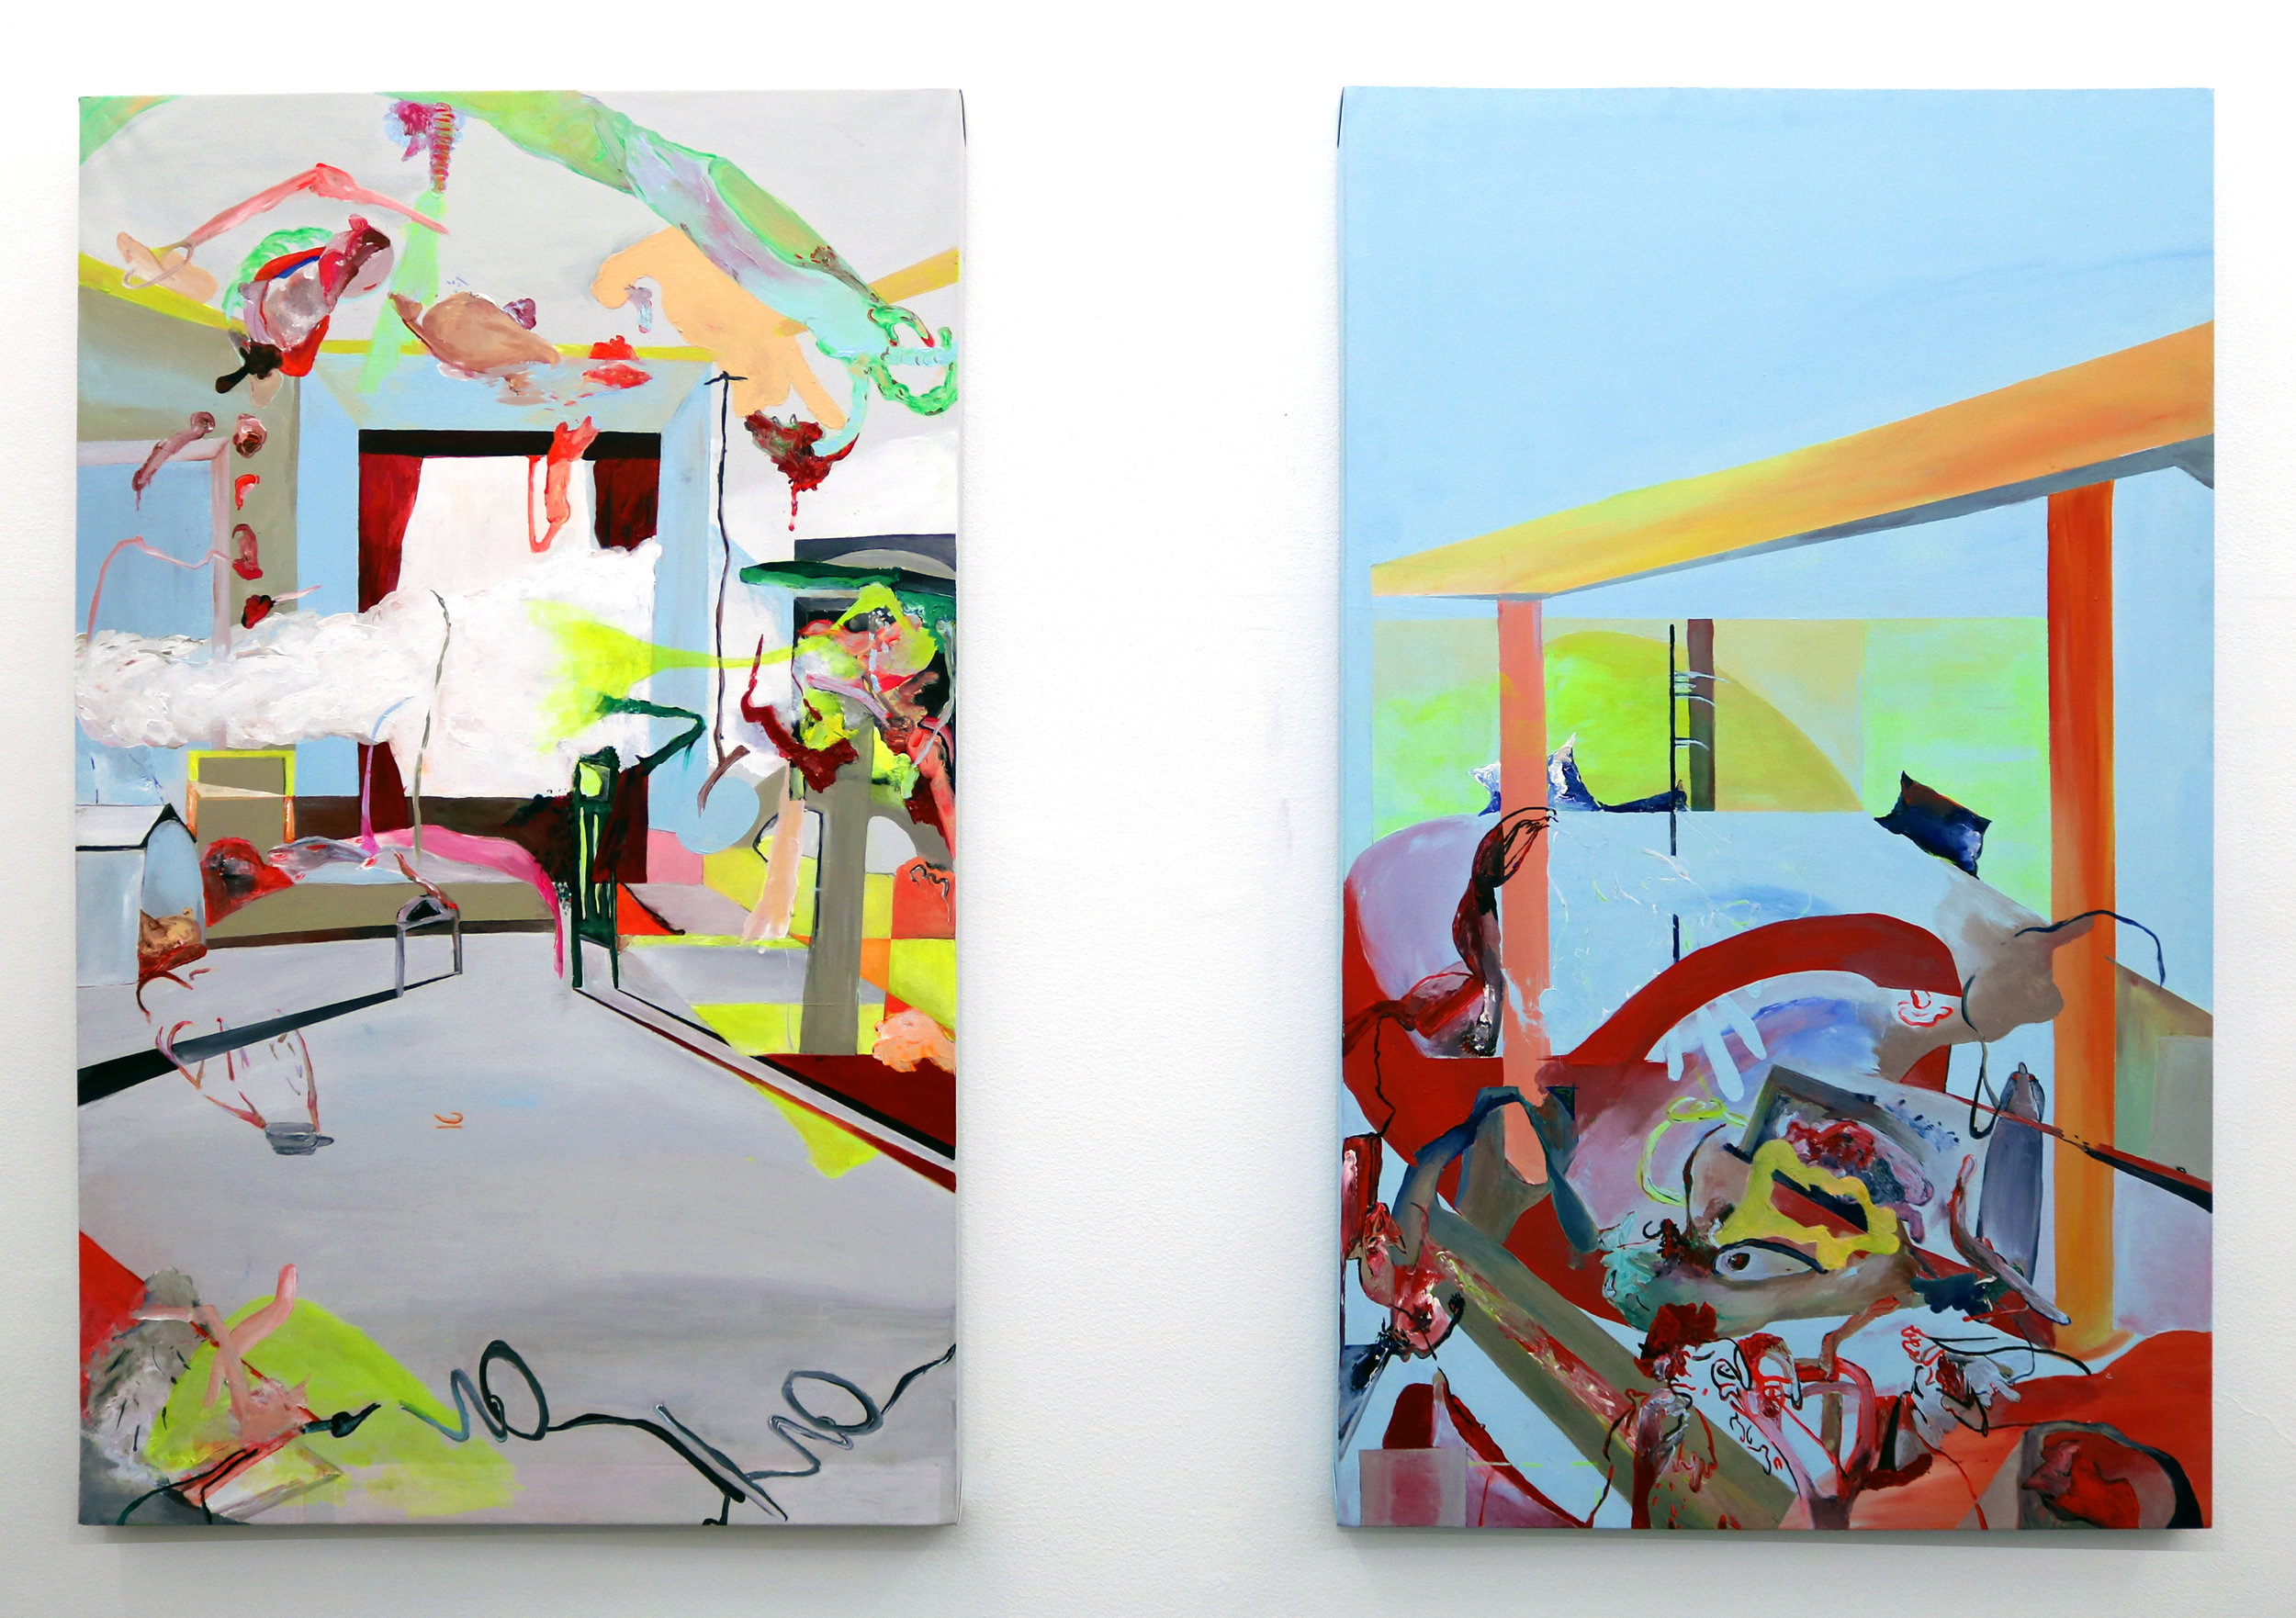 'Special Relativity', a set of 2 paintings, acrylic on canvas, 120 x 80 cm each, 2015.